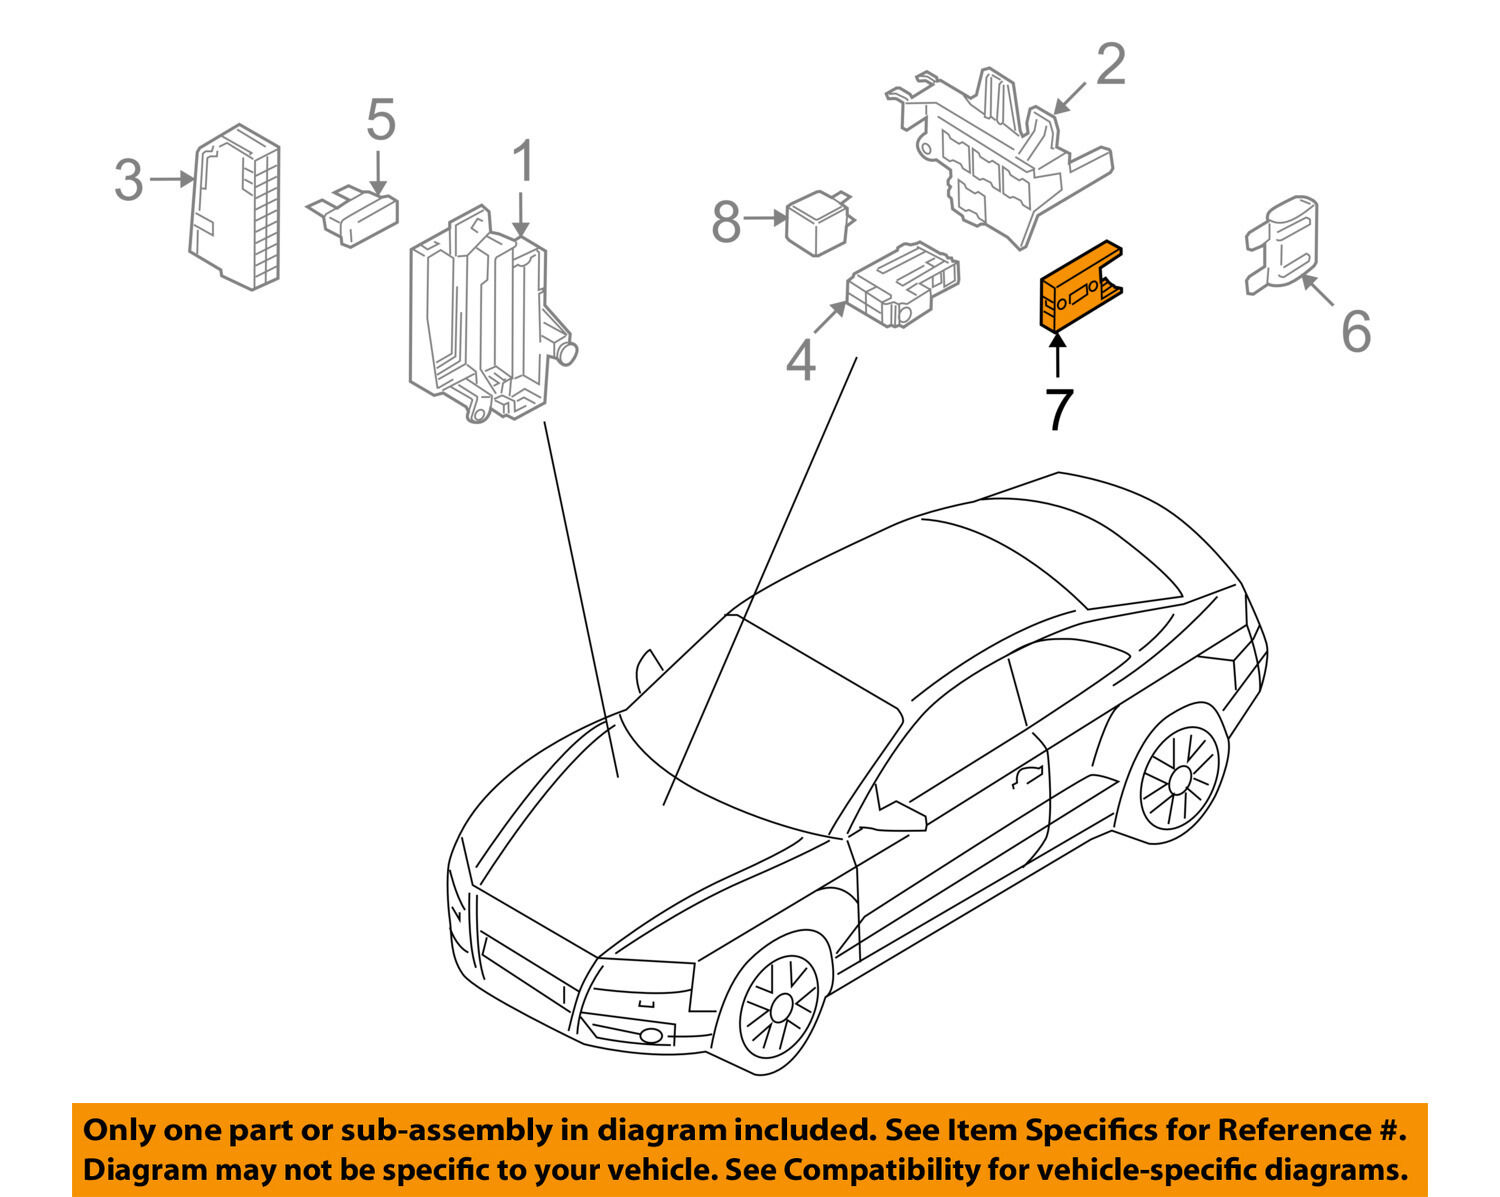 Audi 8a0937530 Genuine Oem Factory Original Fuse Holder Ebay B7 Rs4 Box Norton Secured Powered By Verisign